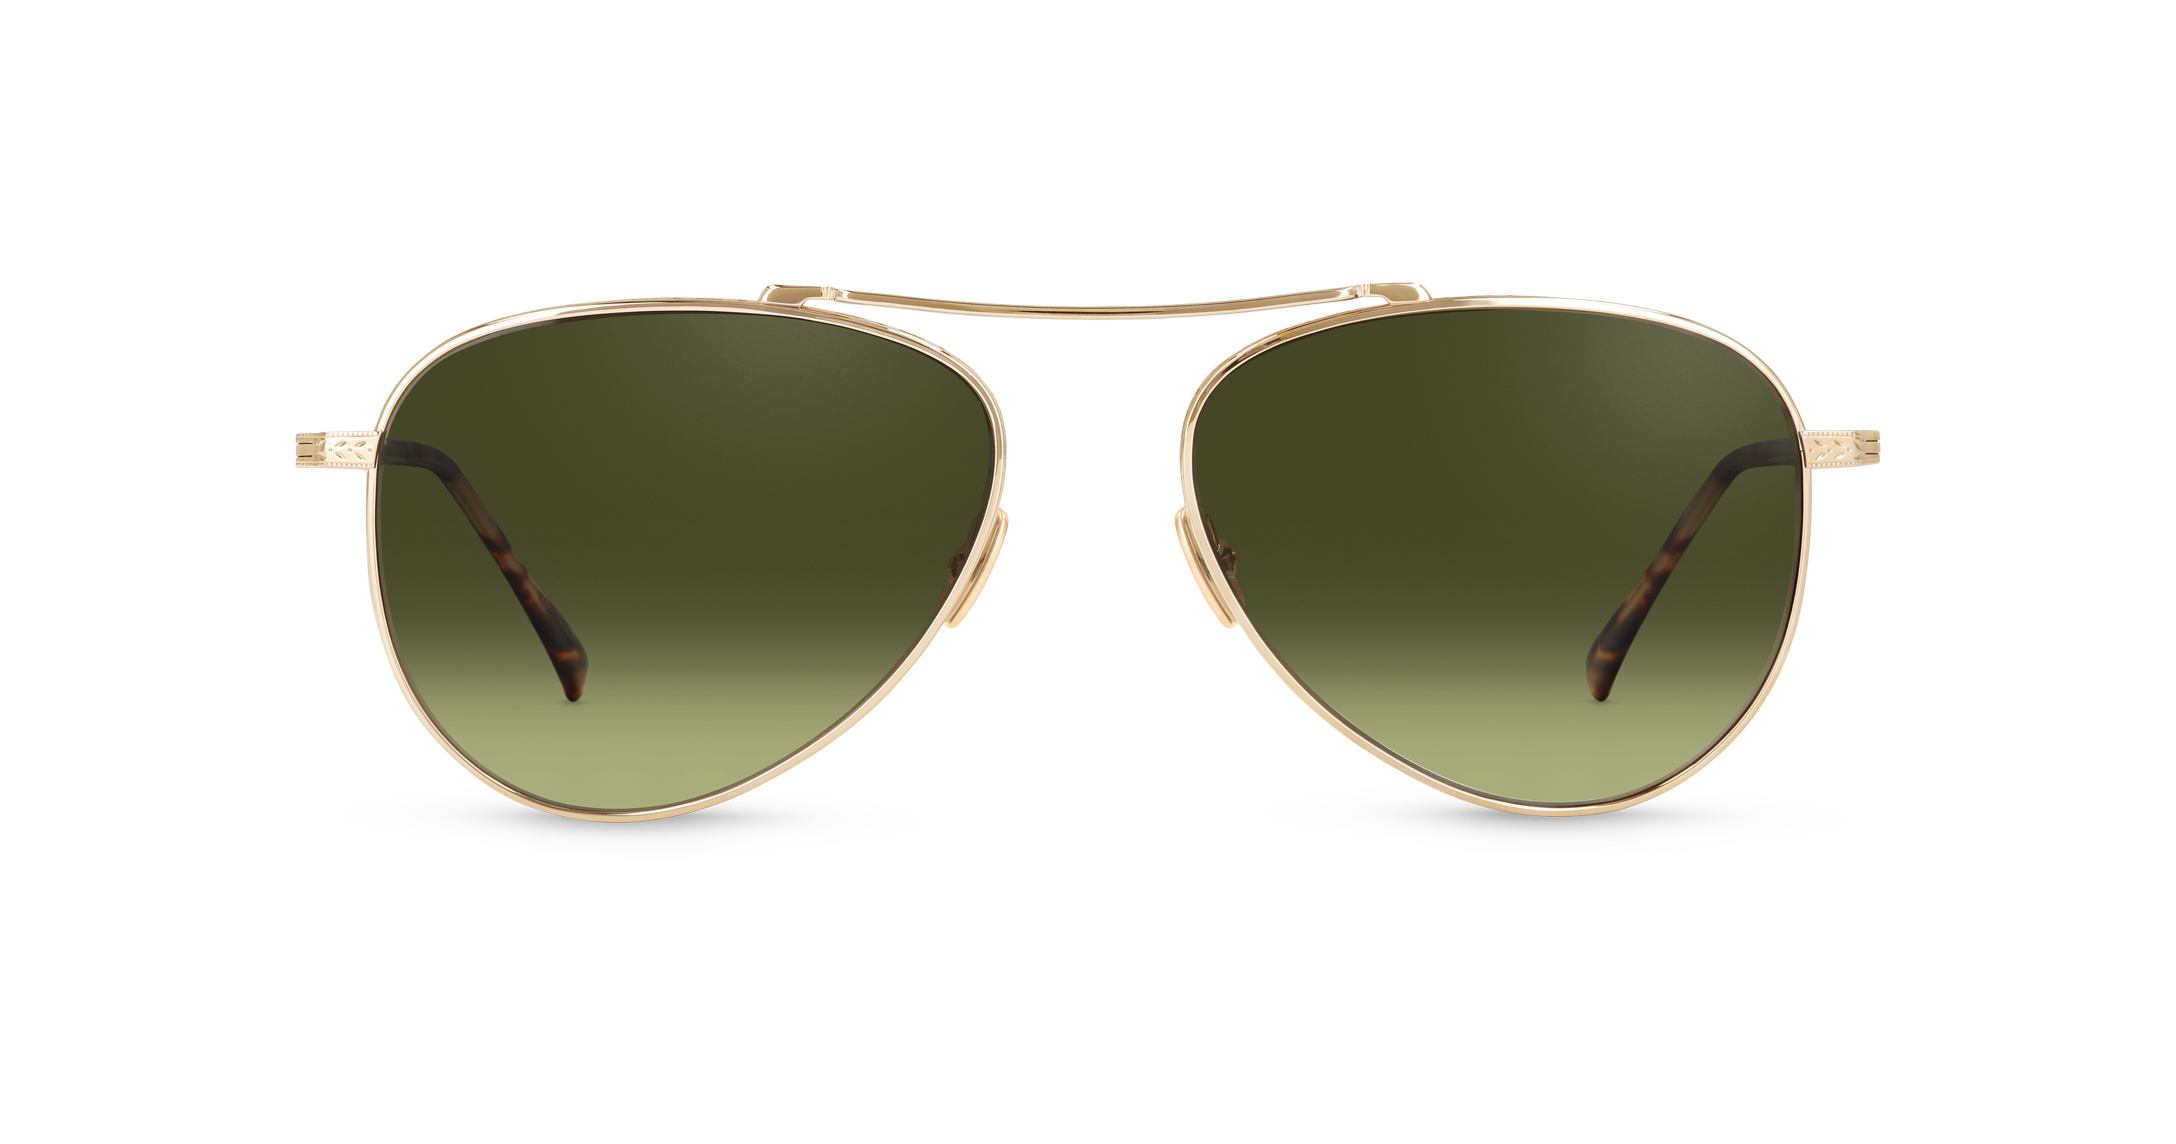 Mr.-Leight-Ichi-S-54-White-Gold-Sunglasses